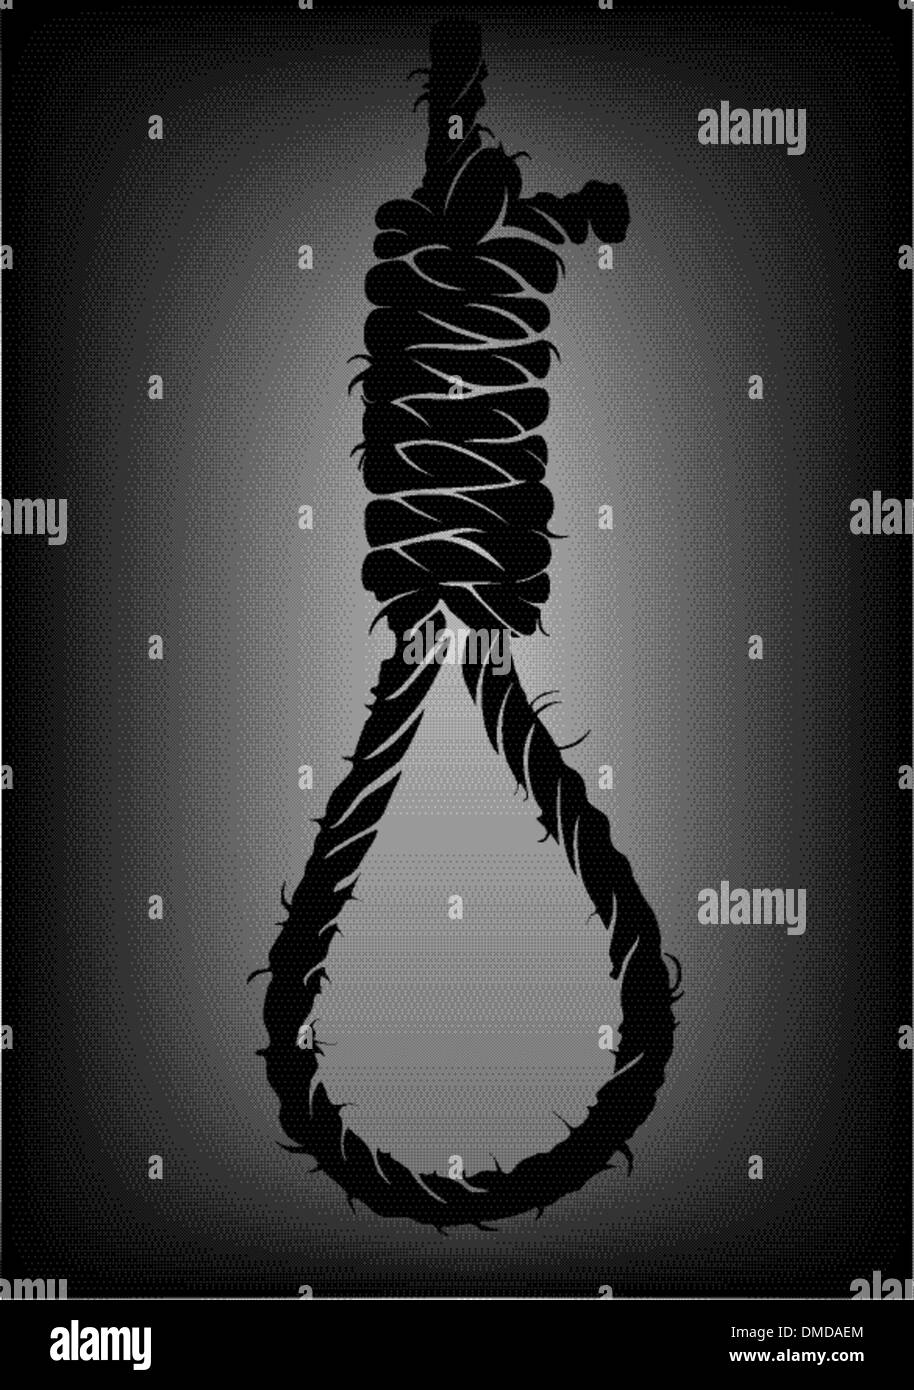 Old Rope With Hangmans Noose Stock Vector Art Illustration